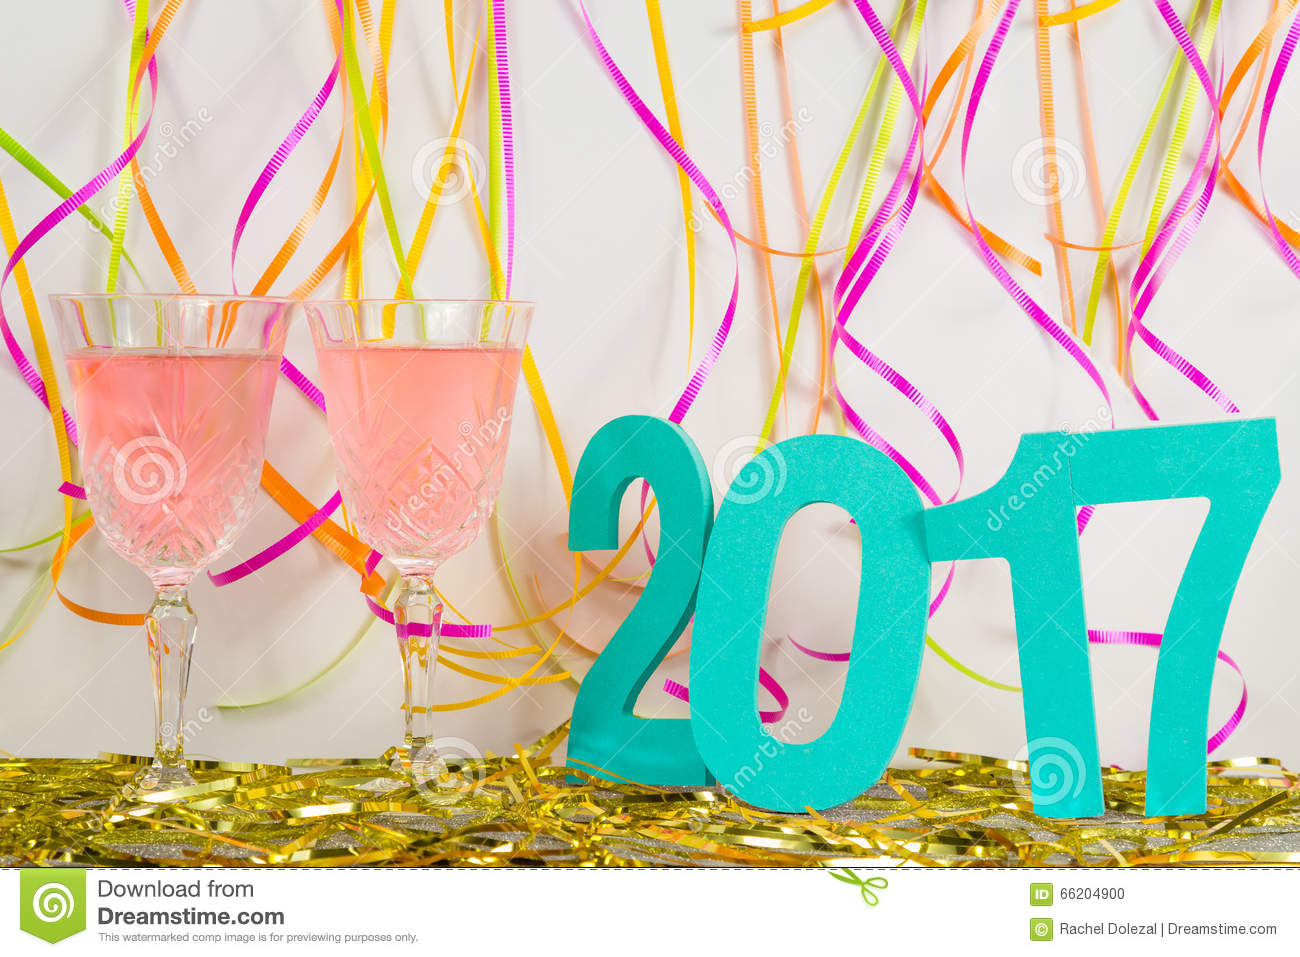 Celebrate New Year   celebrate new year s eve with the